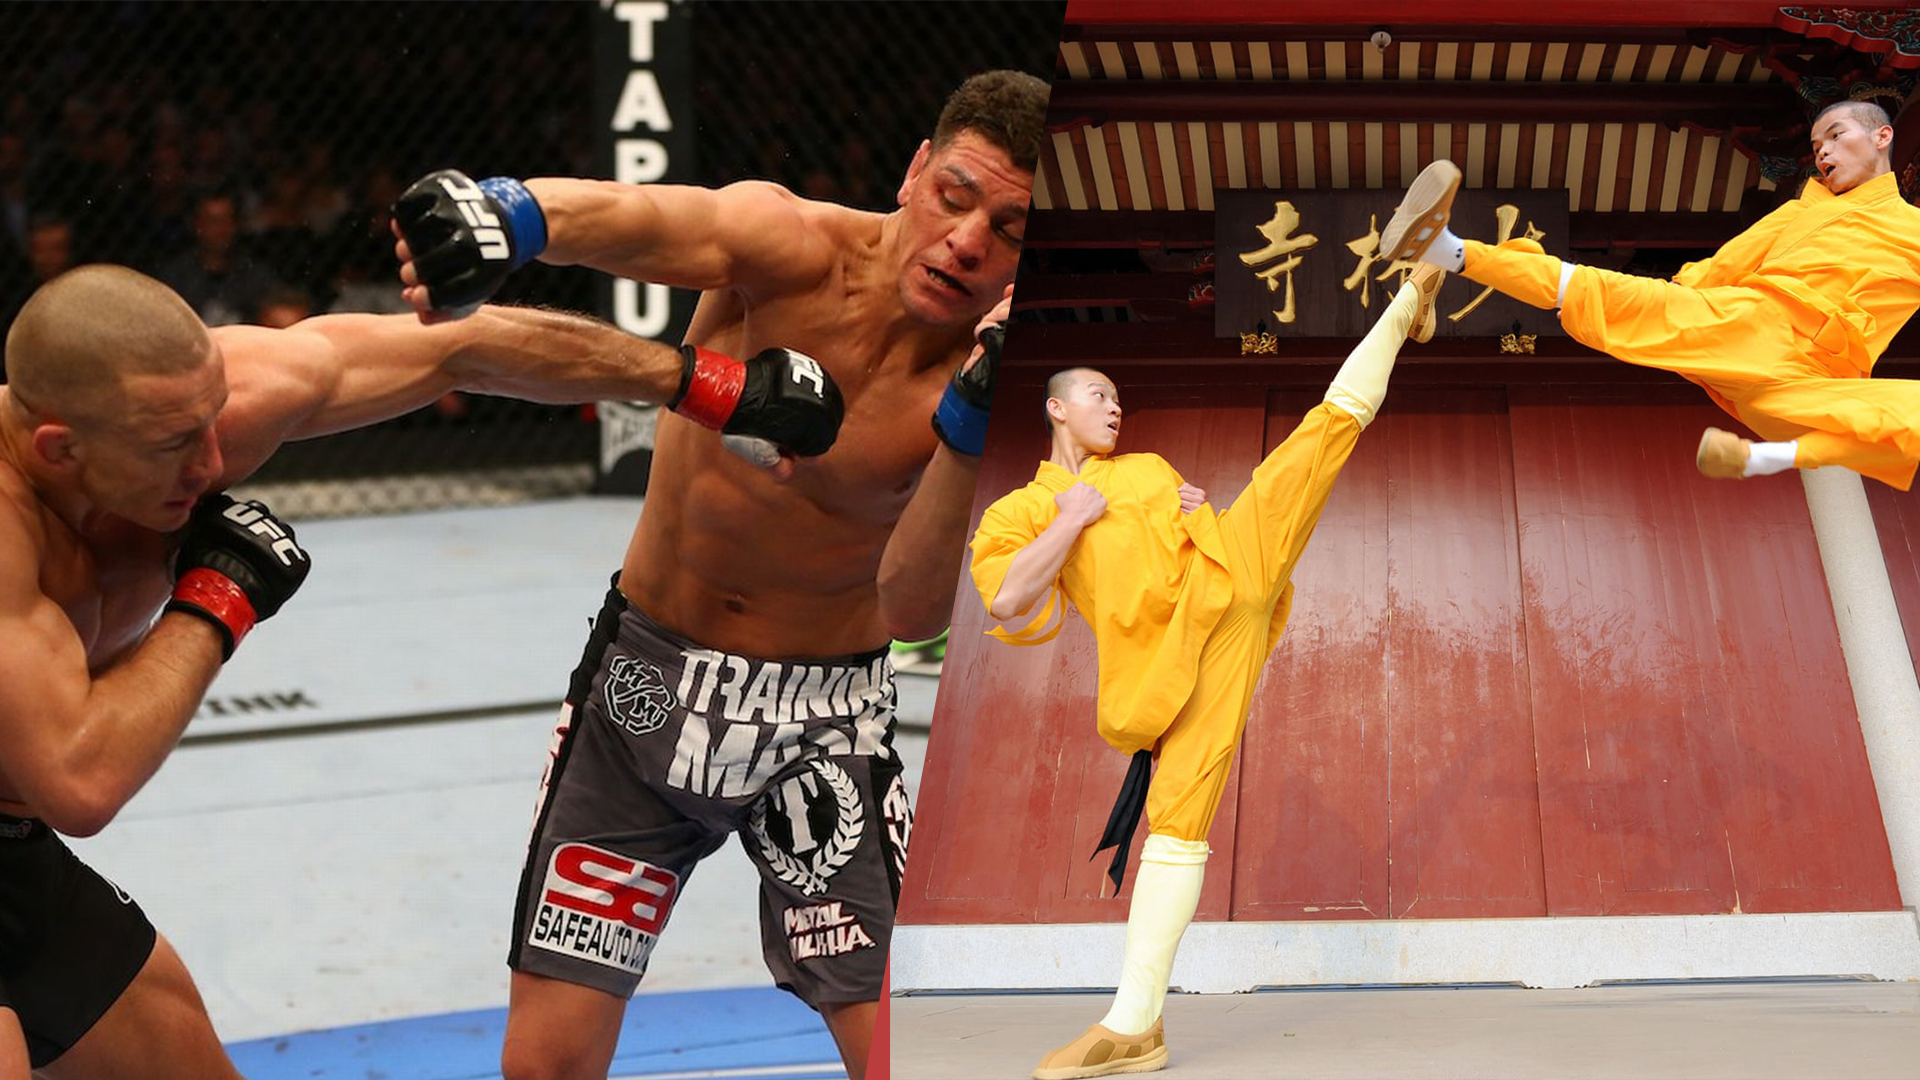 MMA vs Kung Fu, how do they both compare